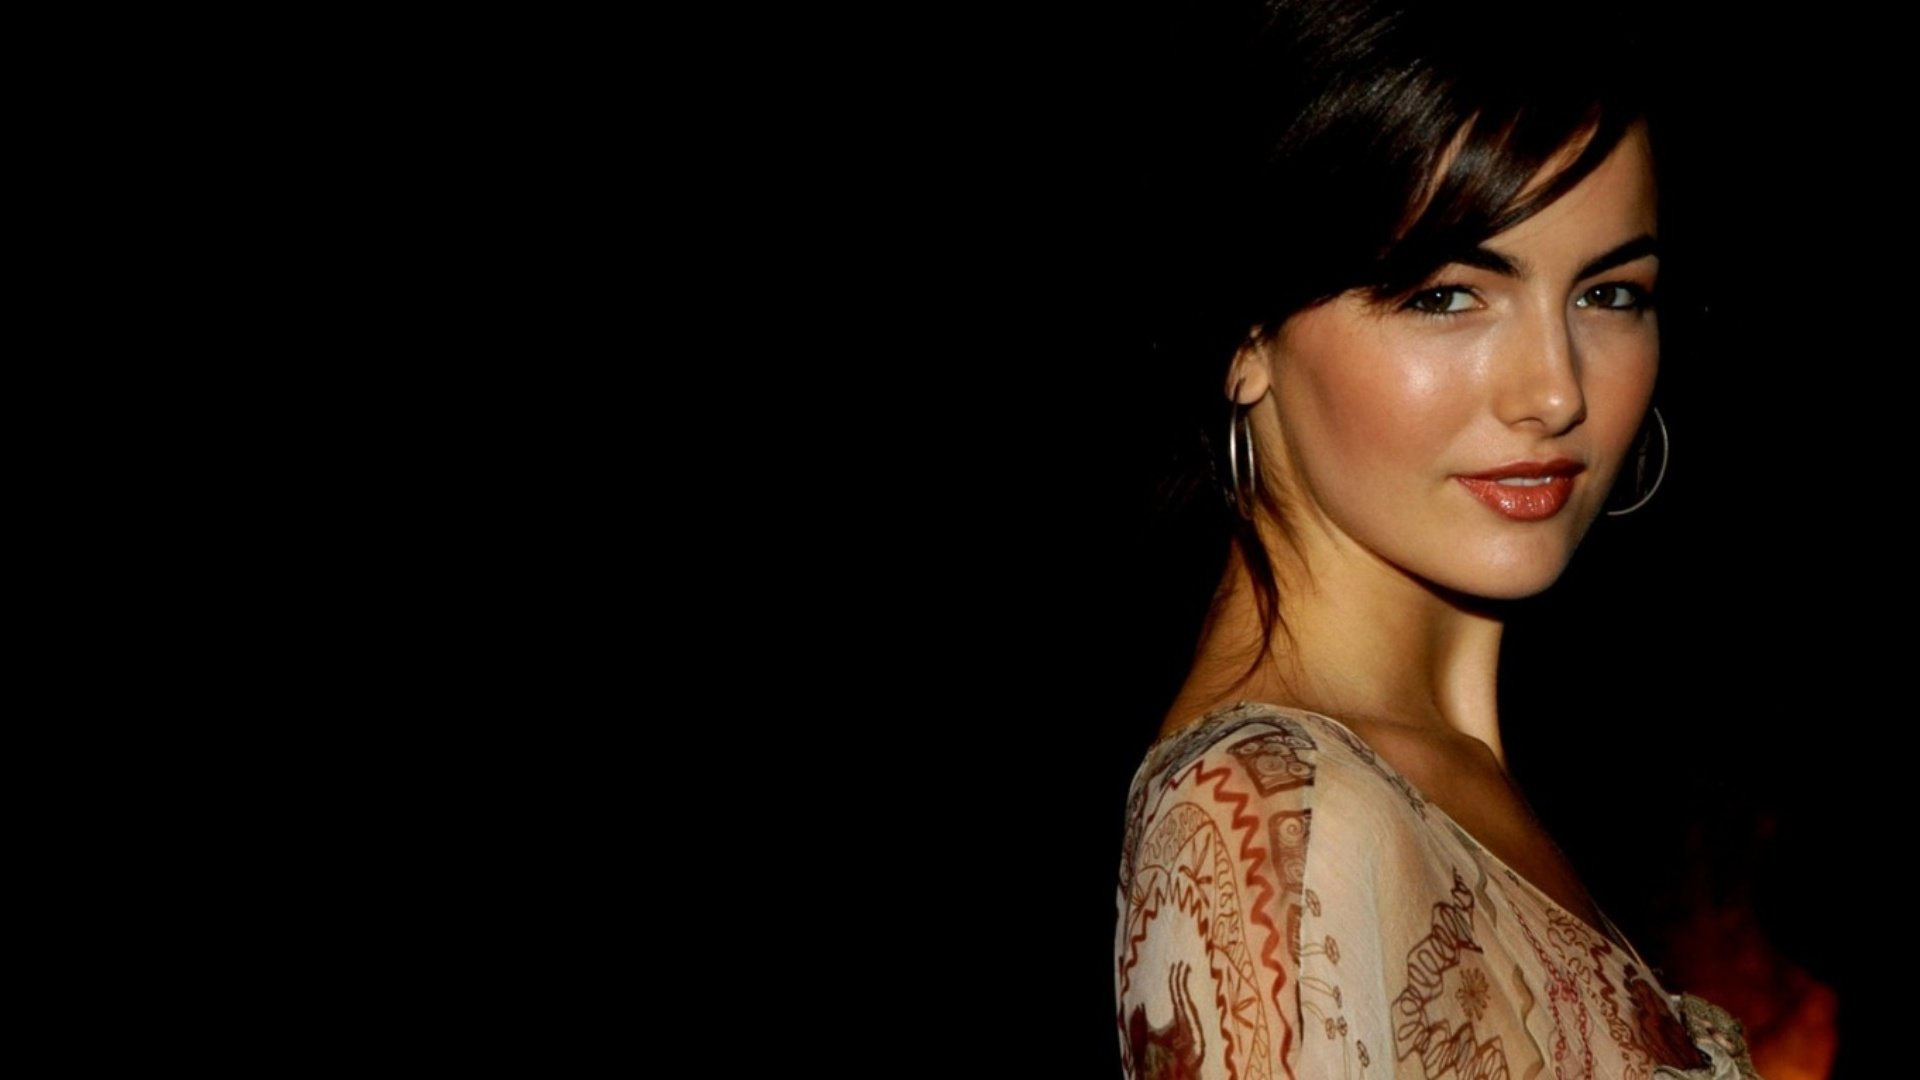 Free Camilla Belle high quality wallpaper ID:254348 for full hd 1920x1080 computer